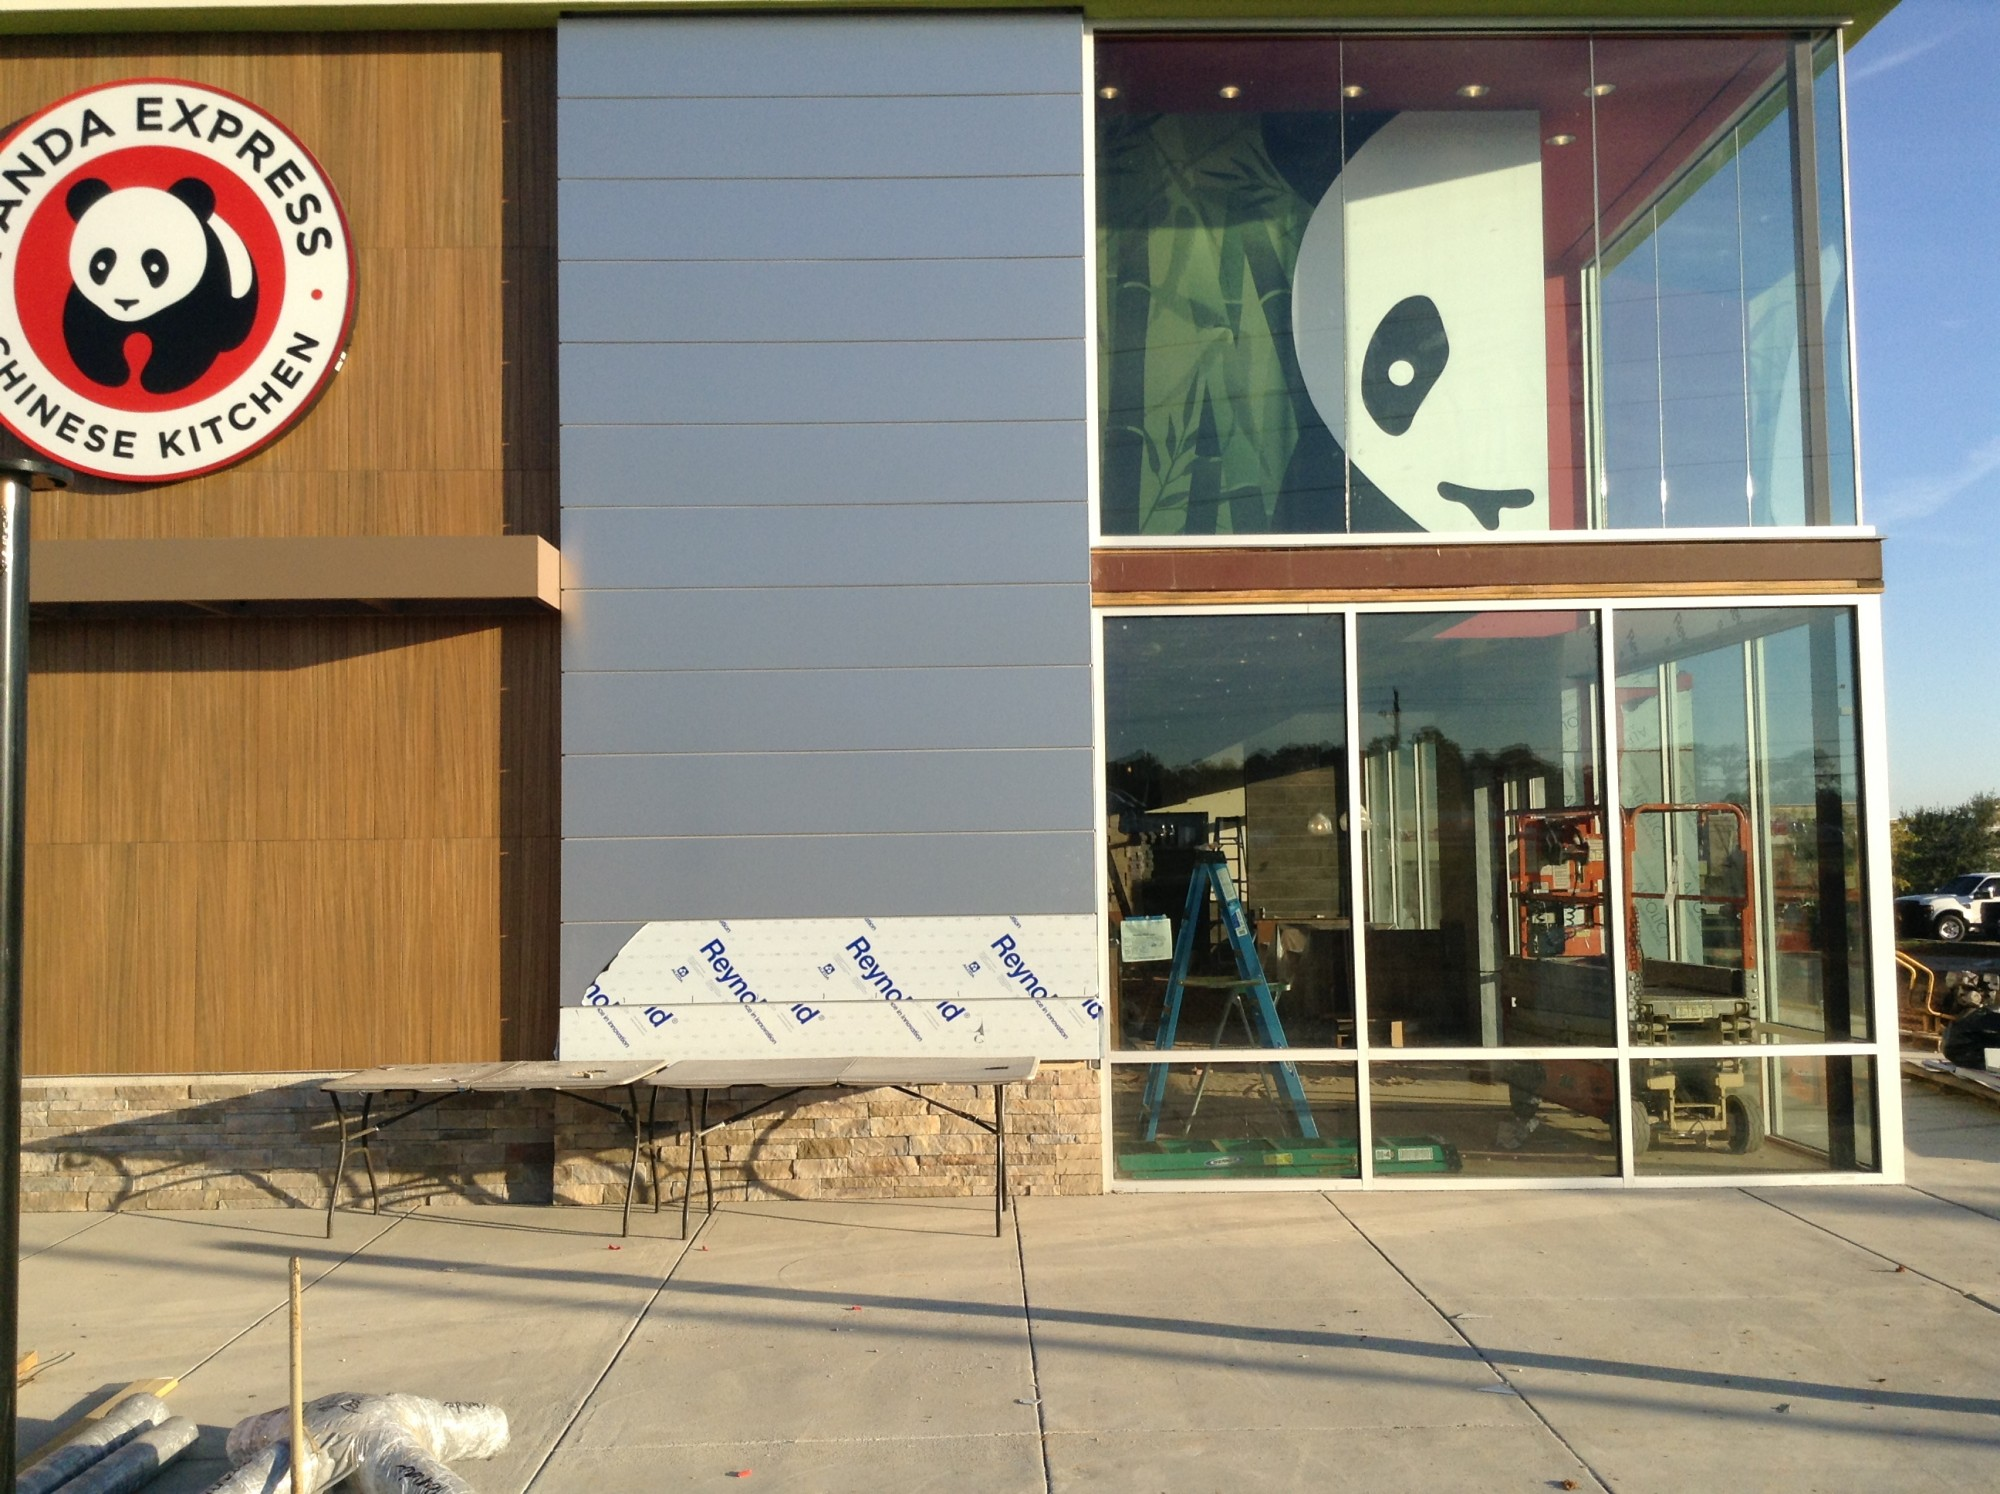 Panda Express Ccs Image Group